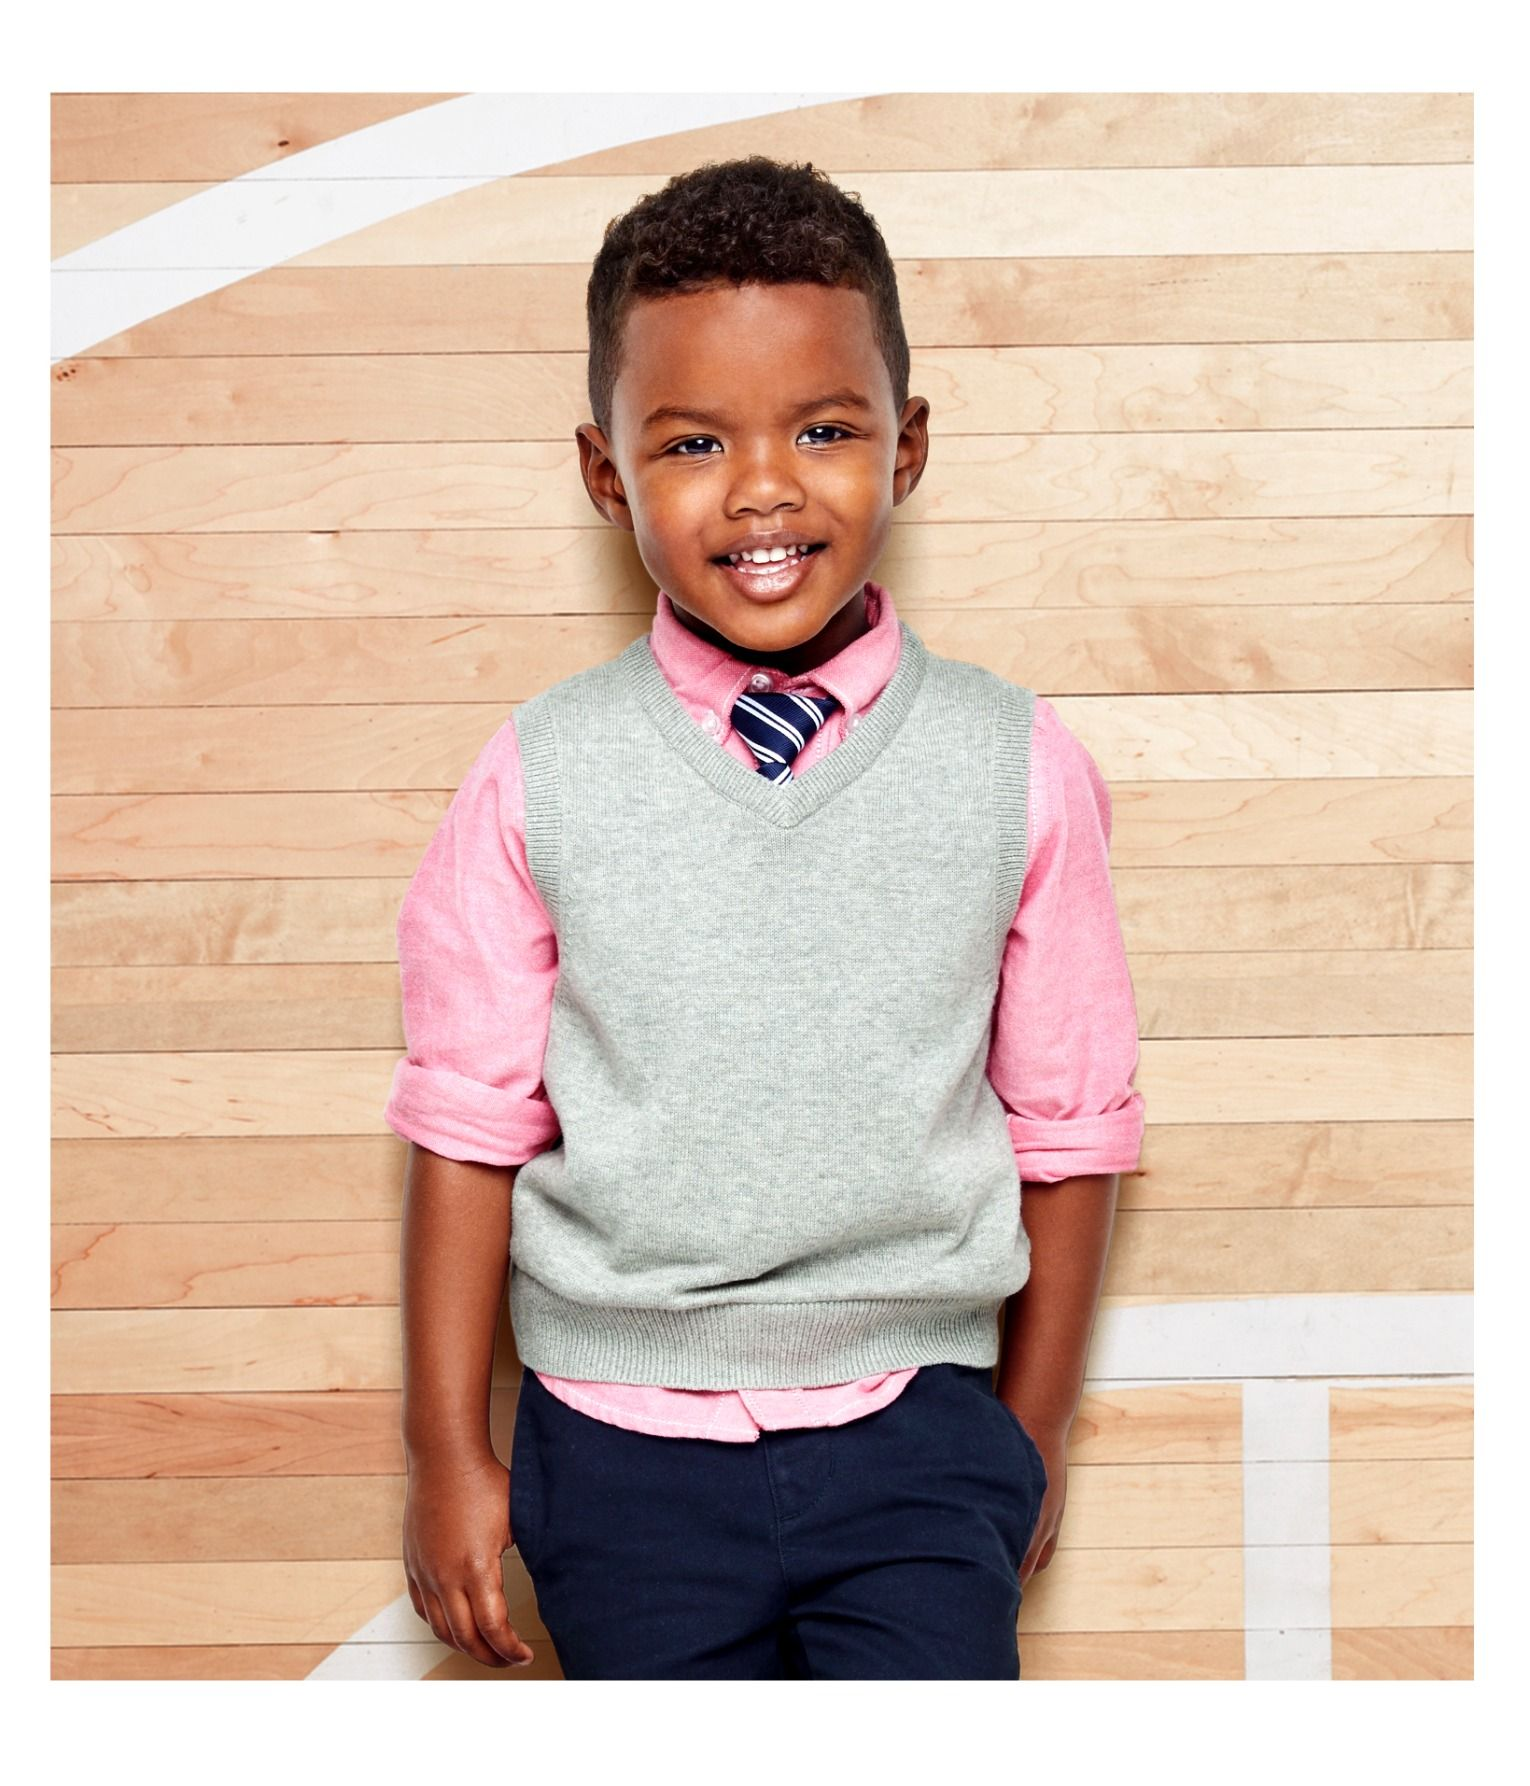 Kids Clothes Back To School Outfit Uniform Inspo First Day Of School Sweater Vest Button Down Top Tie Navy Chinos The Childrens Place